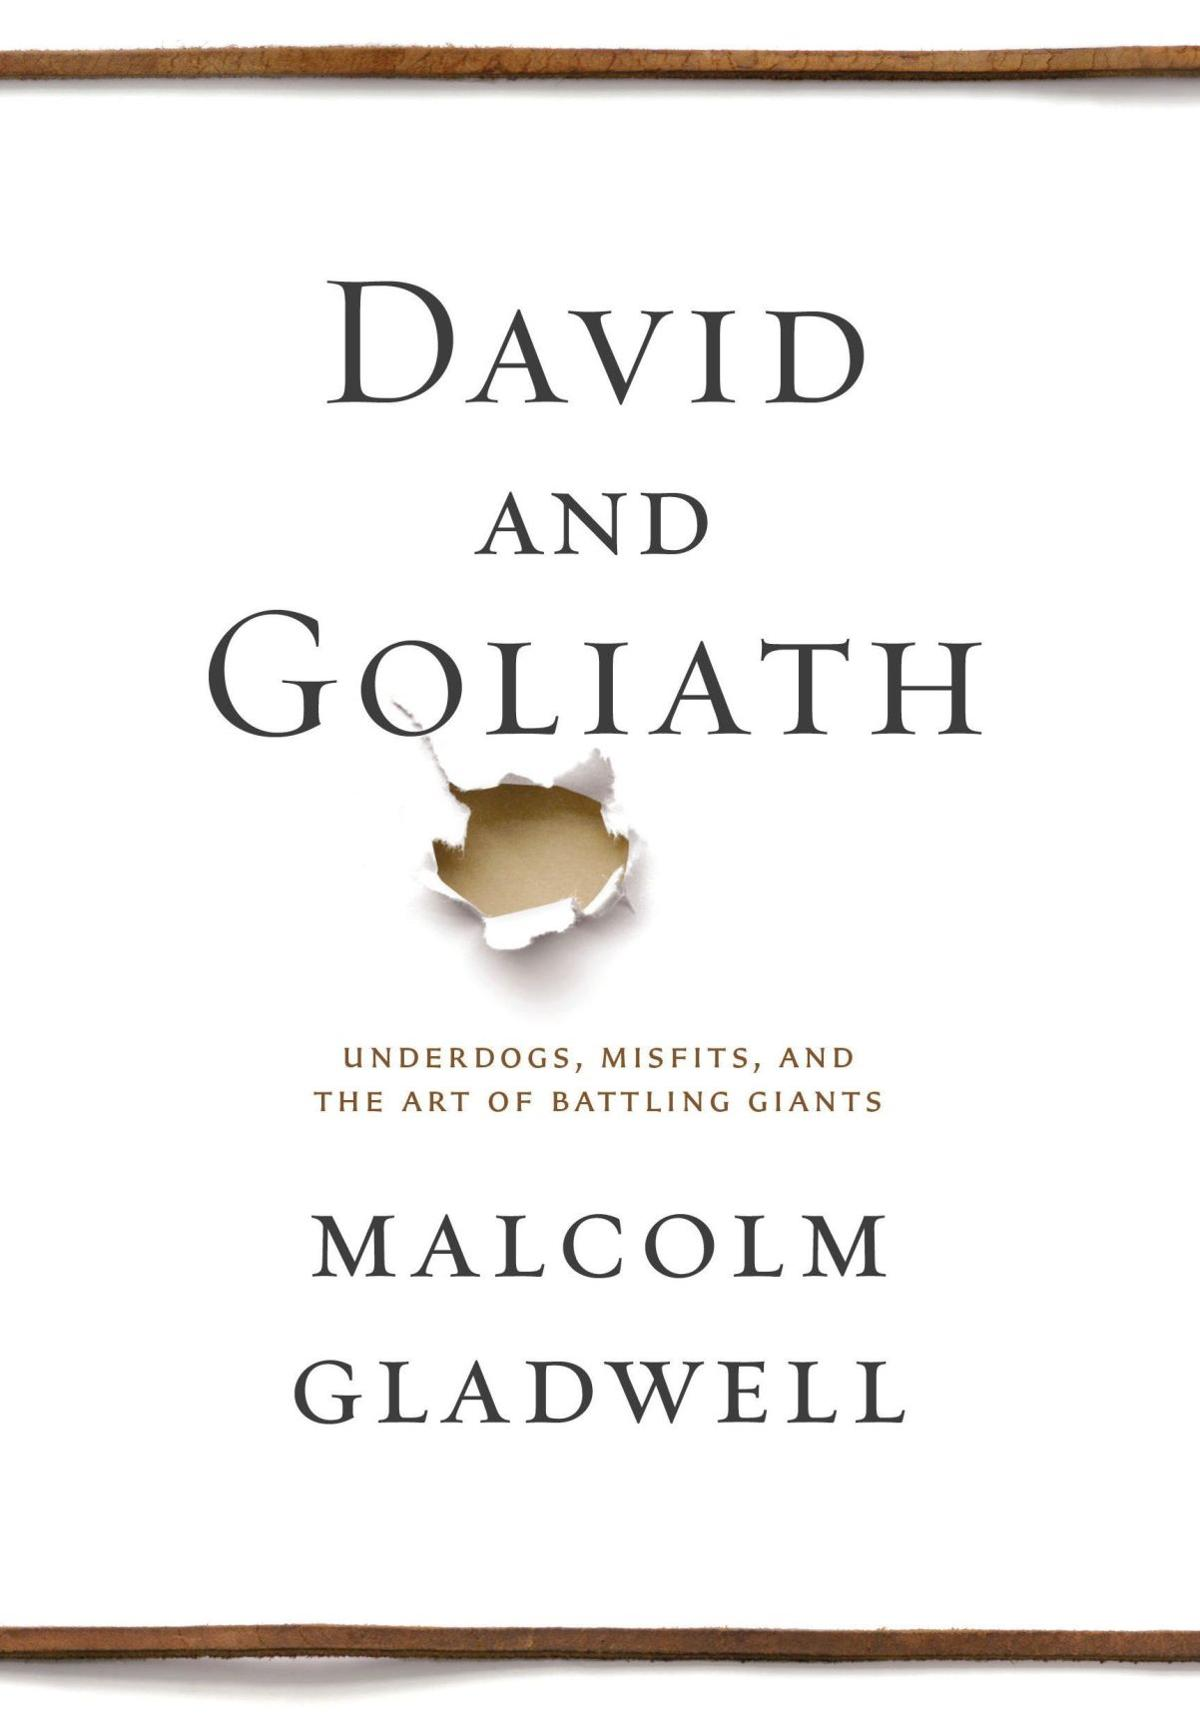 Gladwell's 'David' cheers for underdogs